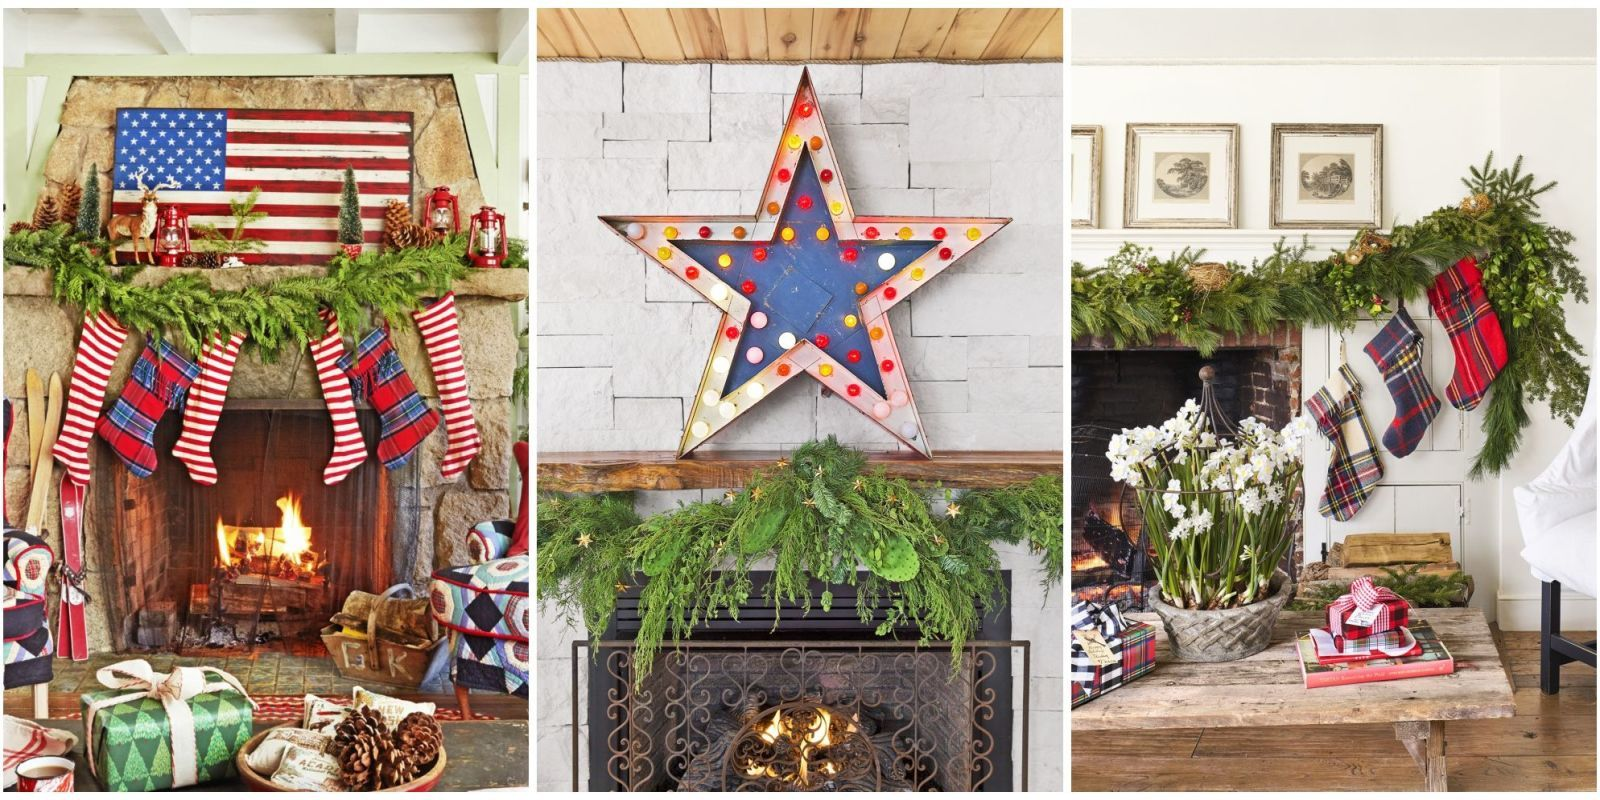 These Christmas fireplace mantels are pretty enough to make you wish you had one in every room of your home. : christmas decorating mantels ideas - www.pureclipart.com